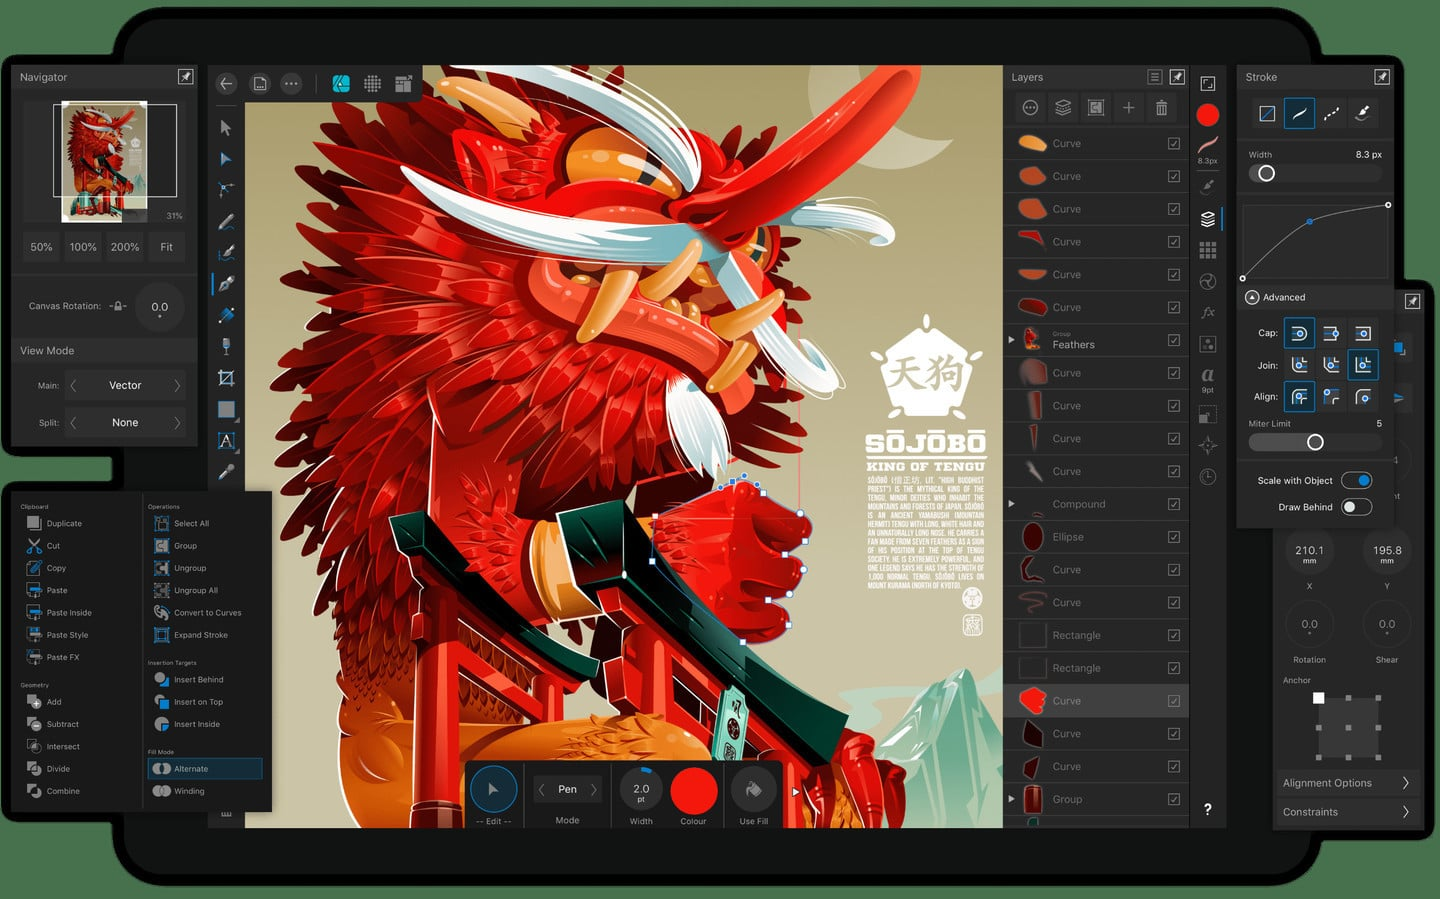 Professional Grade Illustrator App Affinity Designer Lands on the iPad